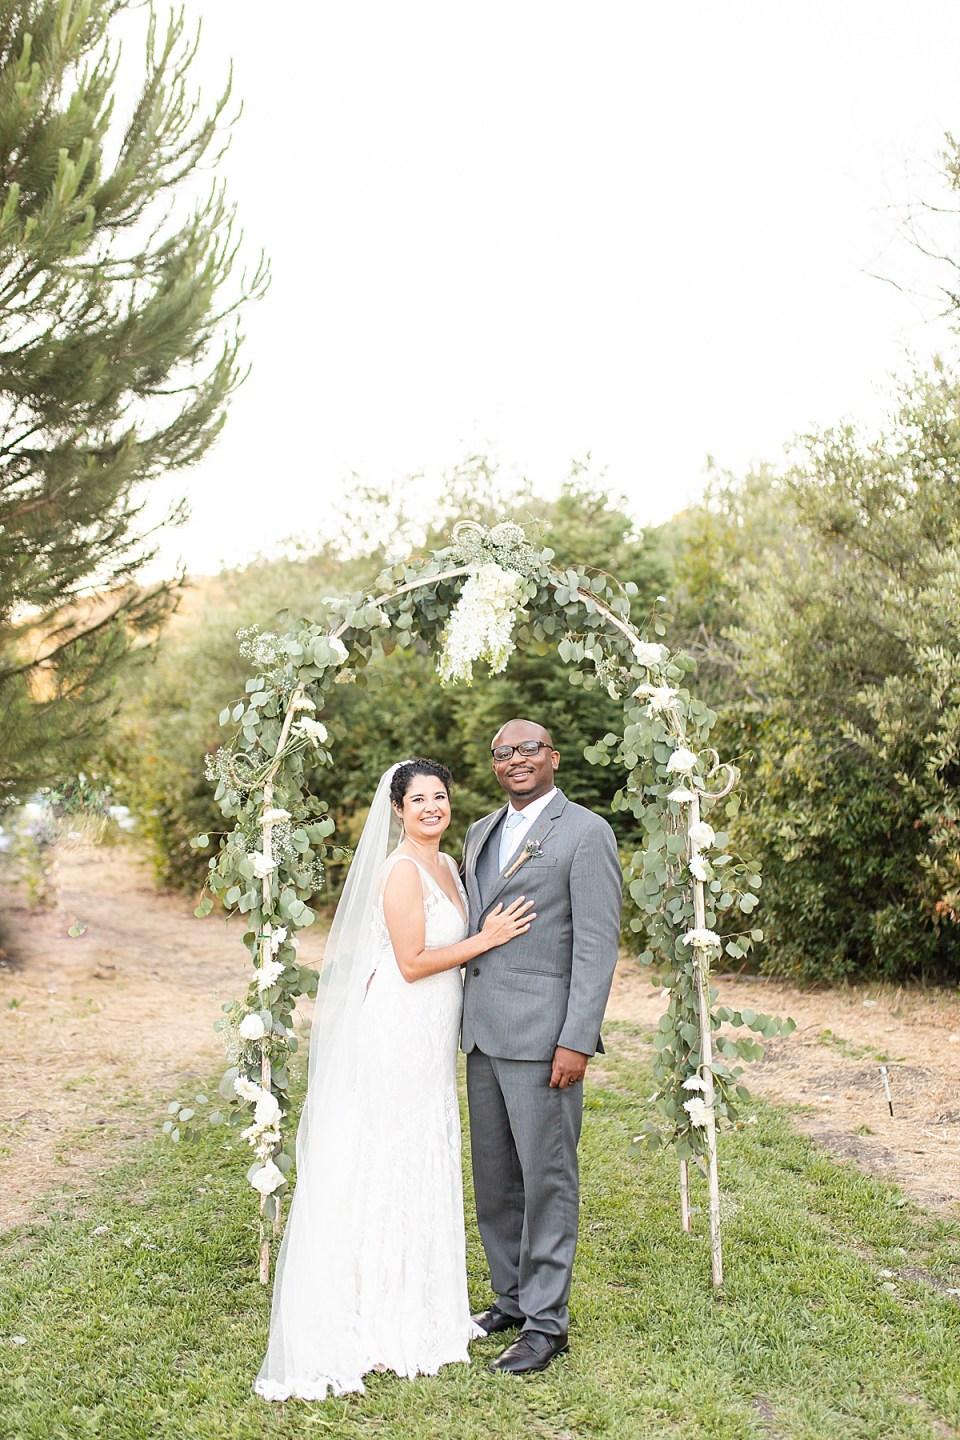 The couple smiling at the camera under their trellis.